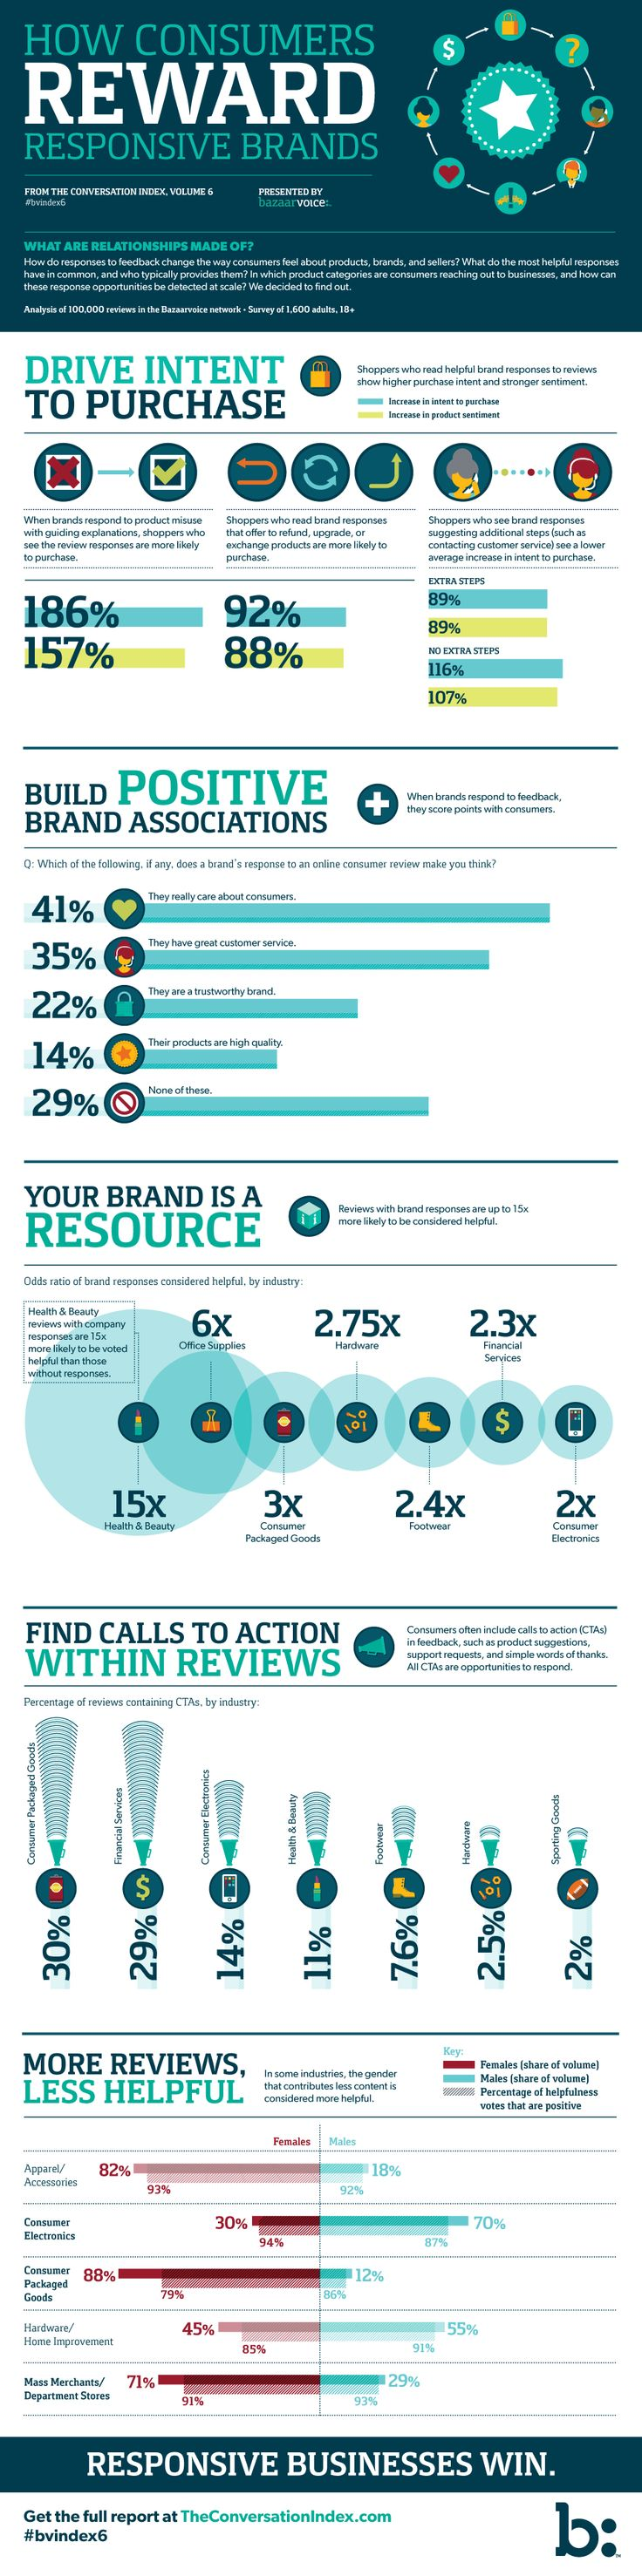 Show the Love: How Customers Reward Responsive Brands